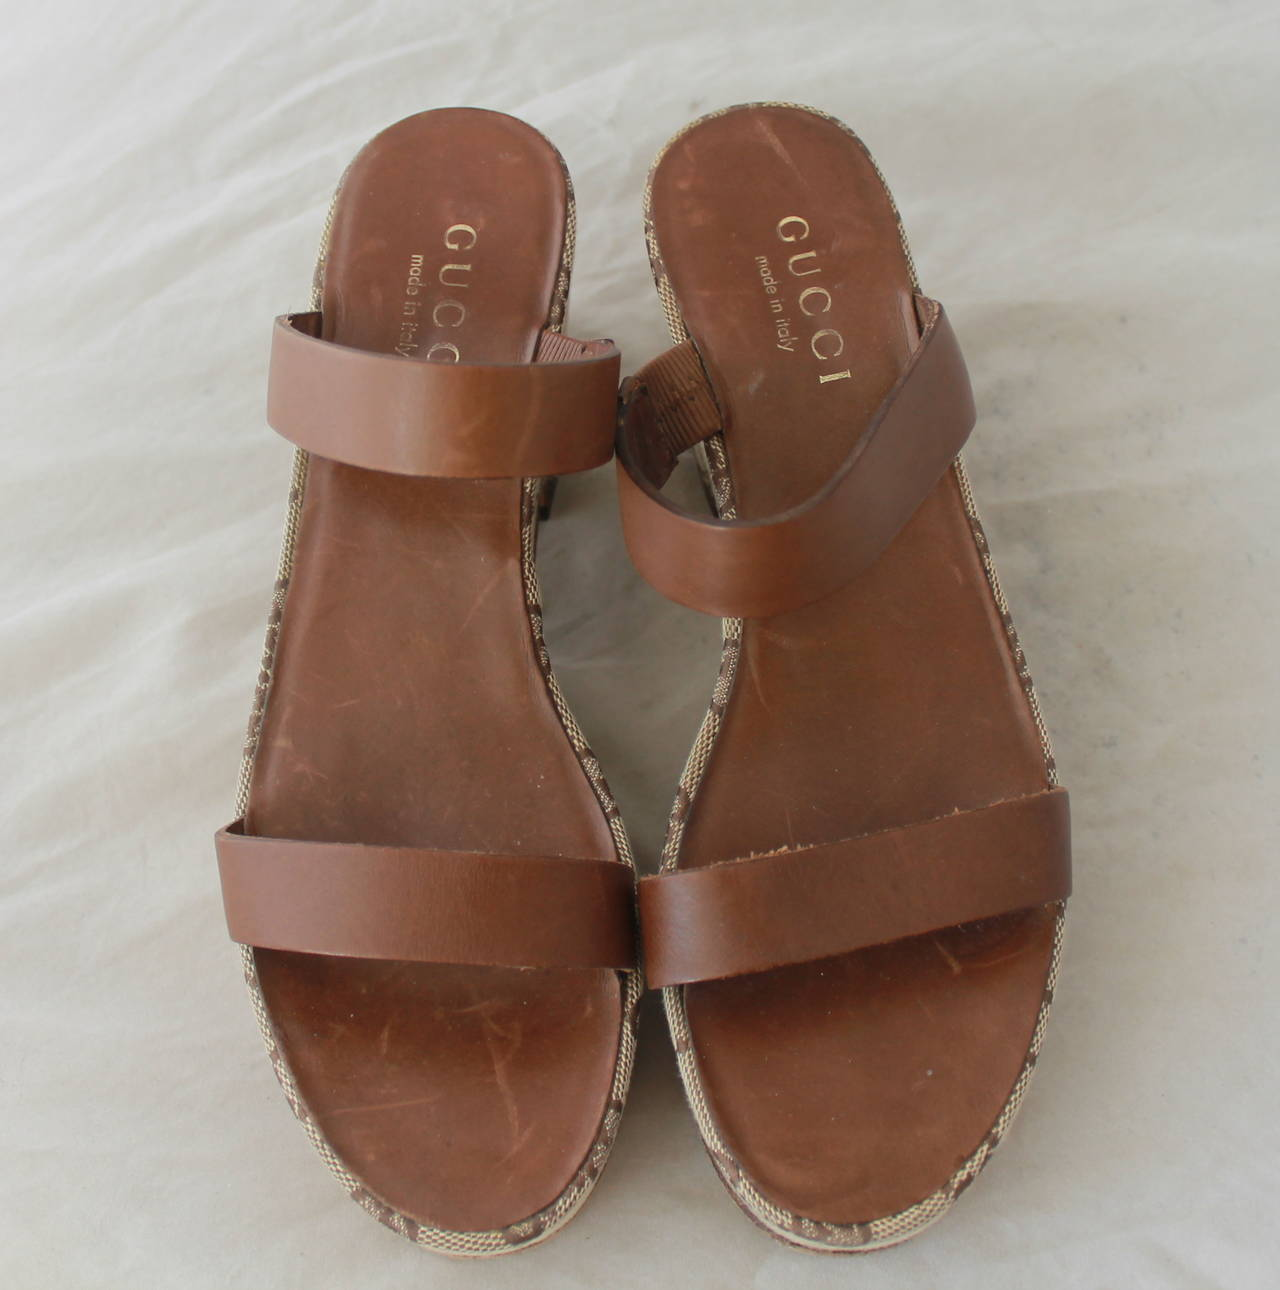 Gucci Brown Monogram Wedge Sandal - 6 In Good Condition For Sale In Palm Beach, FL